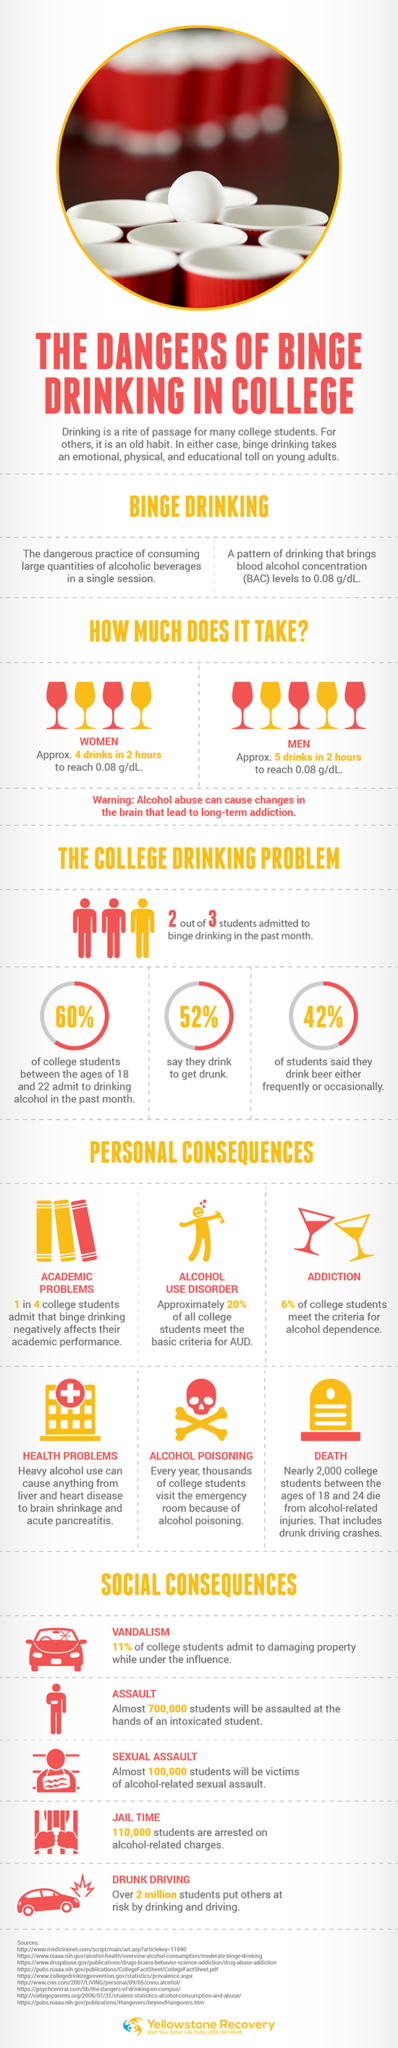 Dangers of Binge Drinking in College Infographic